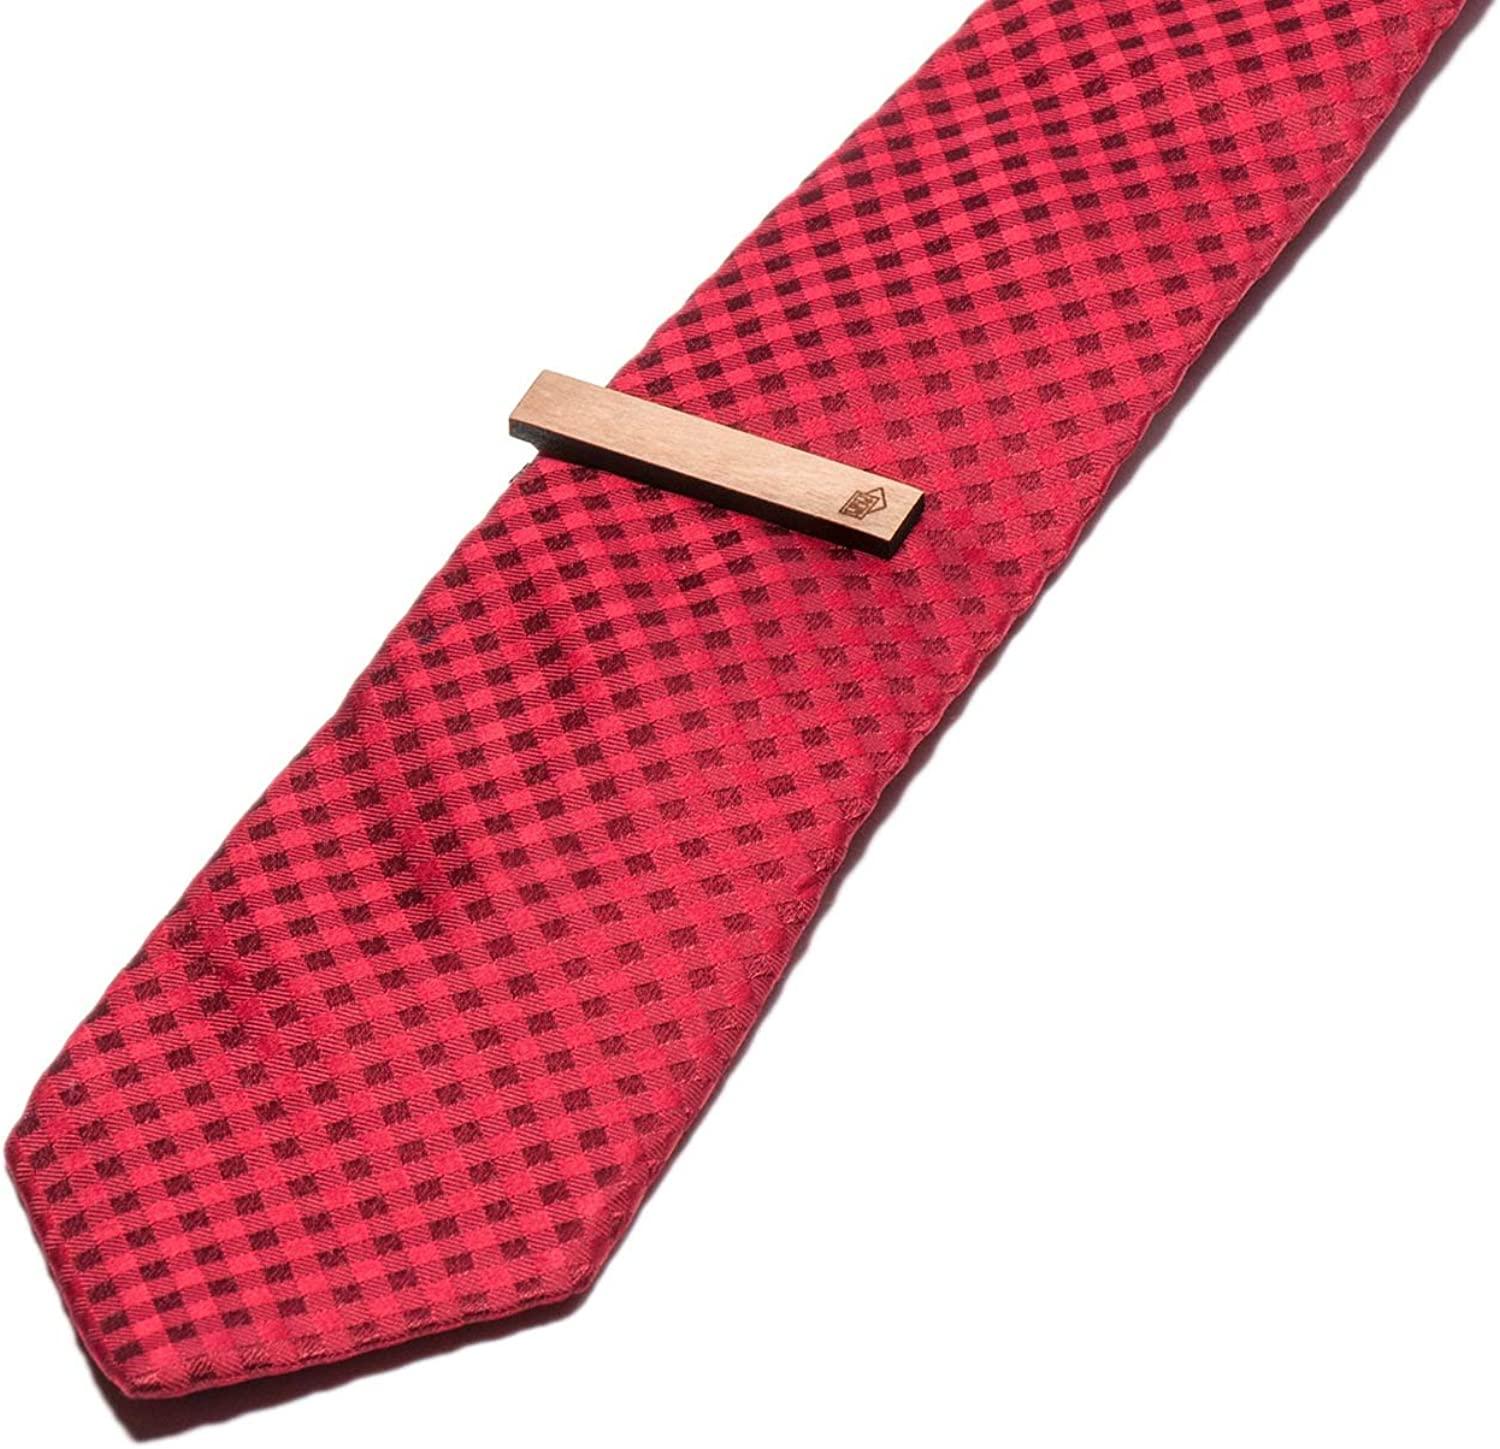 Wooden Accessories Company Wooden Tie Clips with Laser Engraved Wine Crate Design Cherry Wood Tie Bar Engraved in The USA